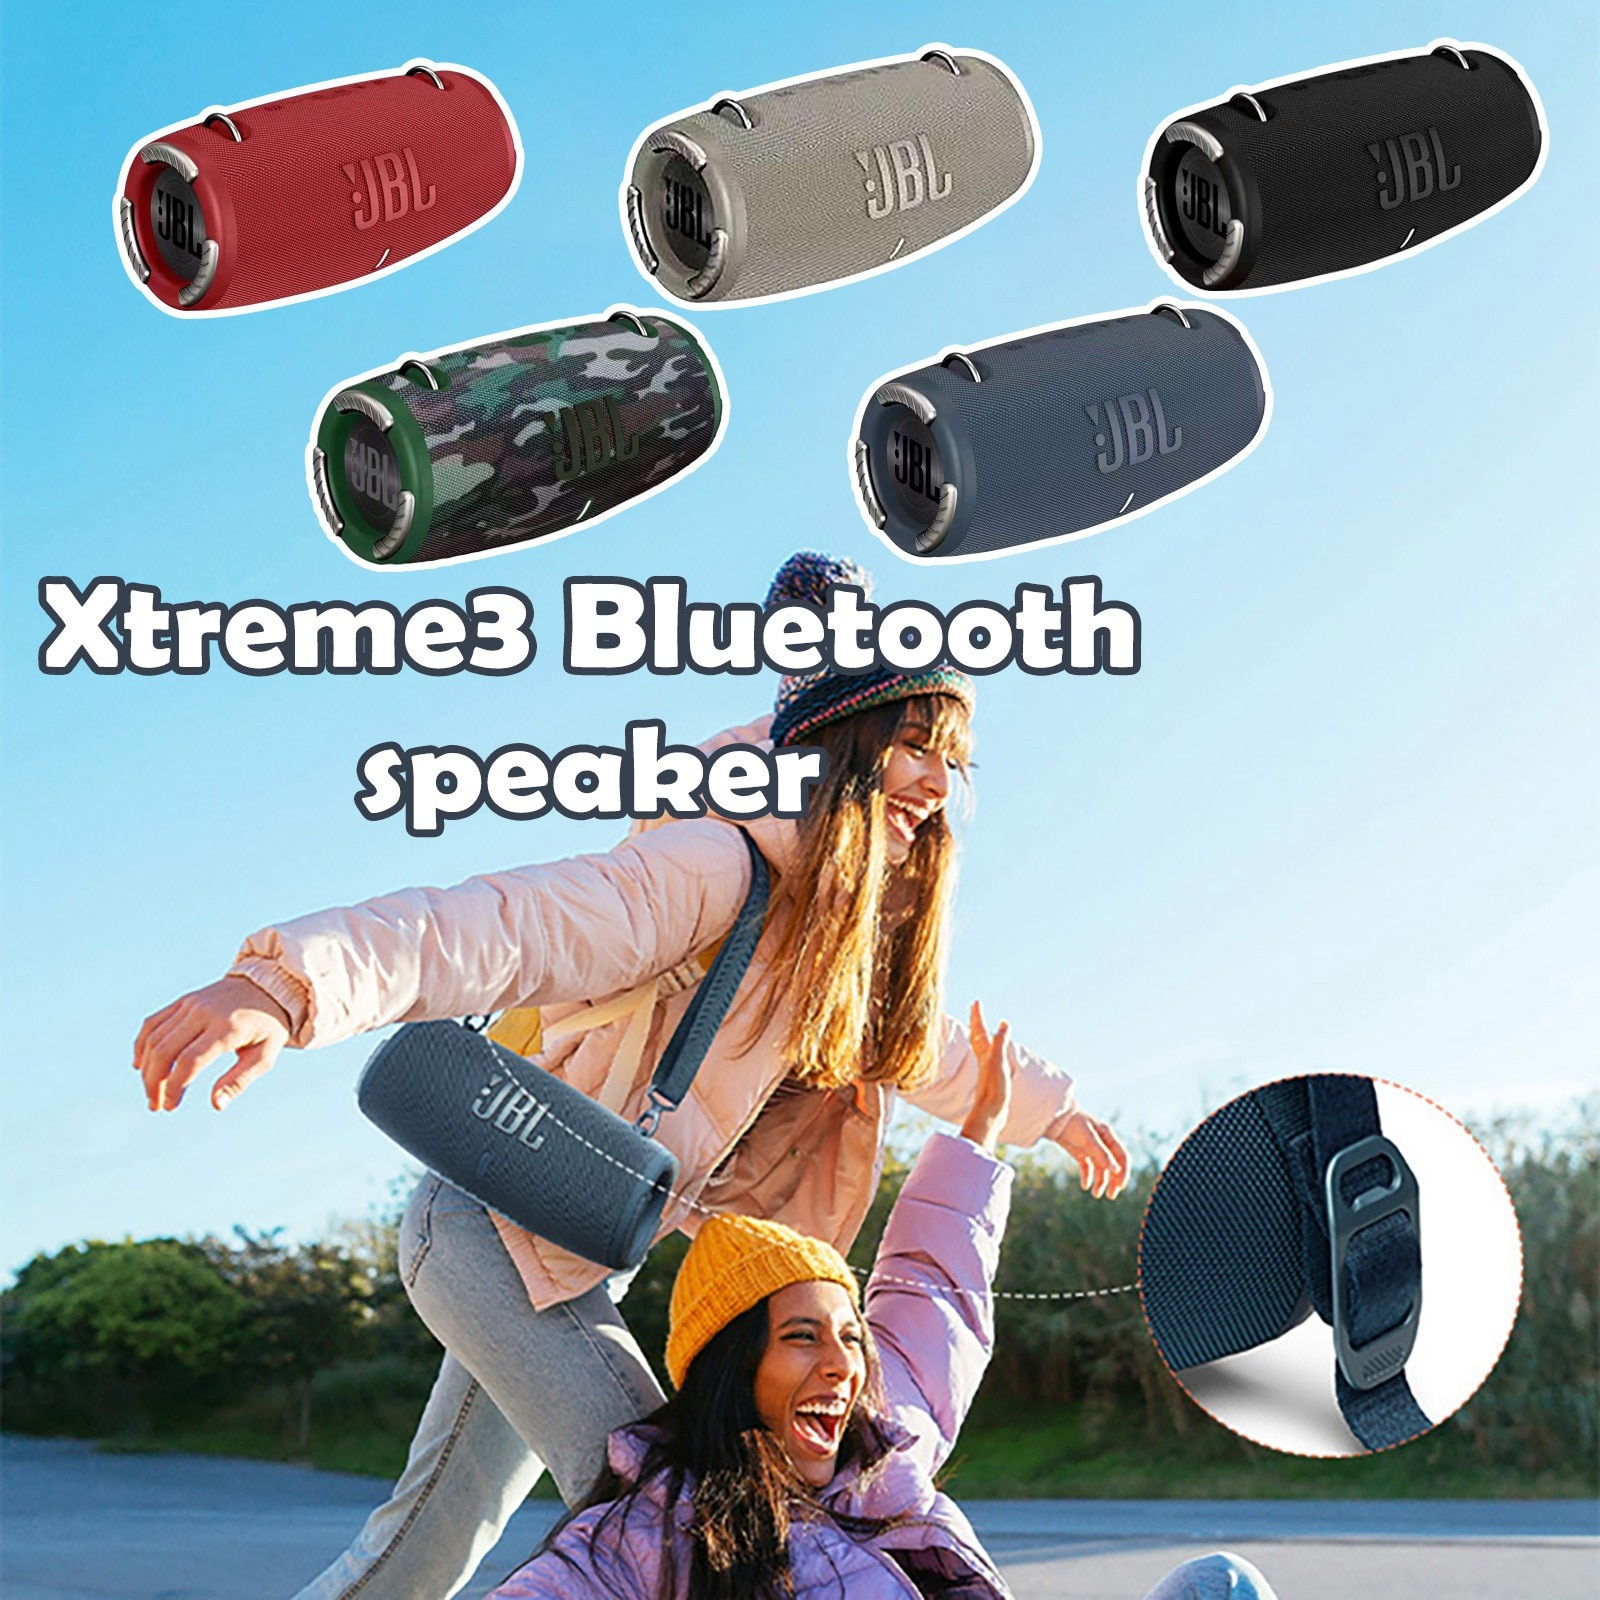 Xtreme 3 Bluetooth Speaker Portable Outdoor Wireless Speaker Waterproof Xtreme Powerful Deep Subwoofer Music Party Charge5 Flip enlarge